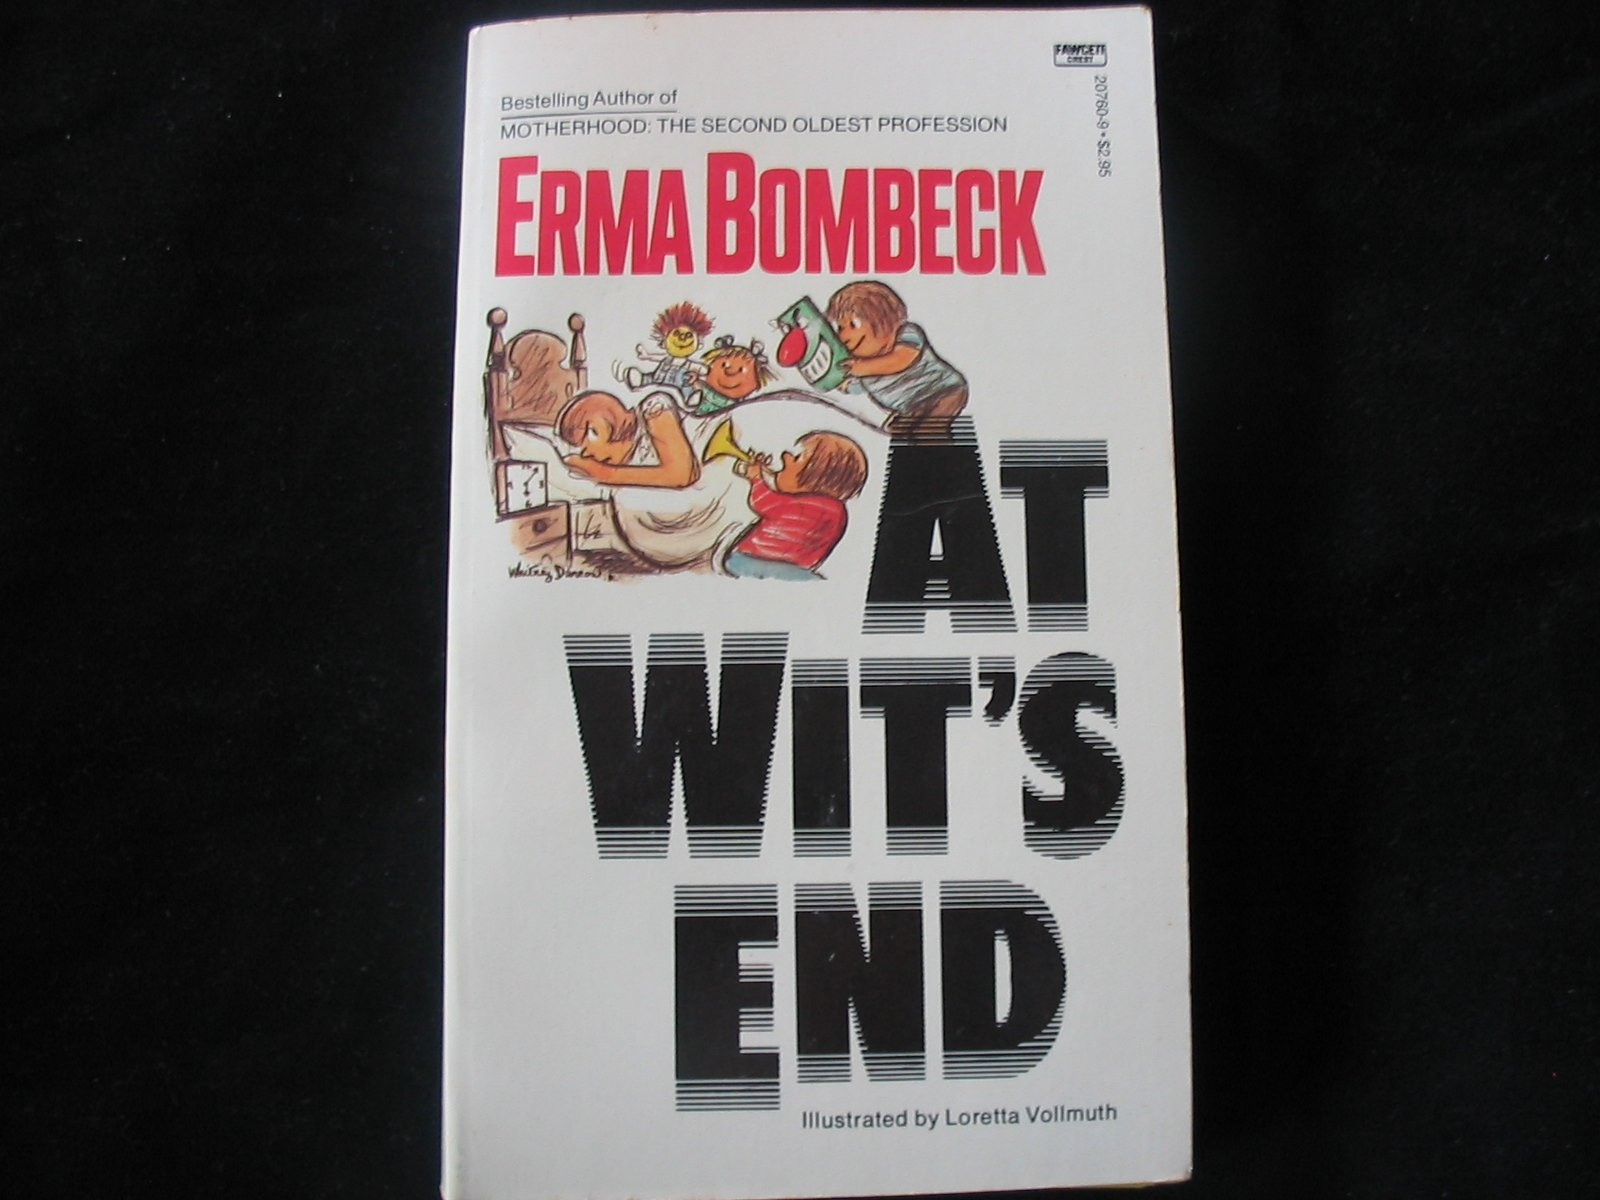 At Wits End Humor By Erma Bombeck Erma Bombeck Amazoncom Books